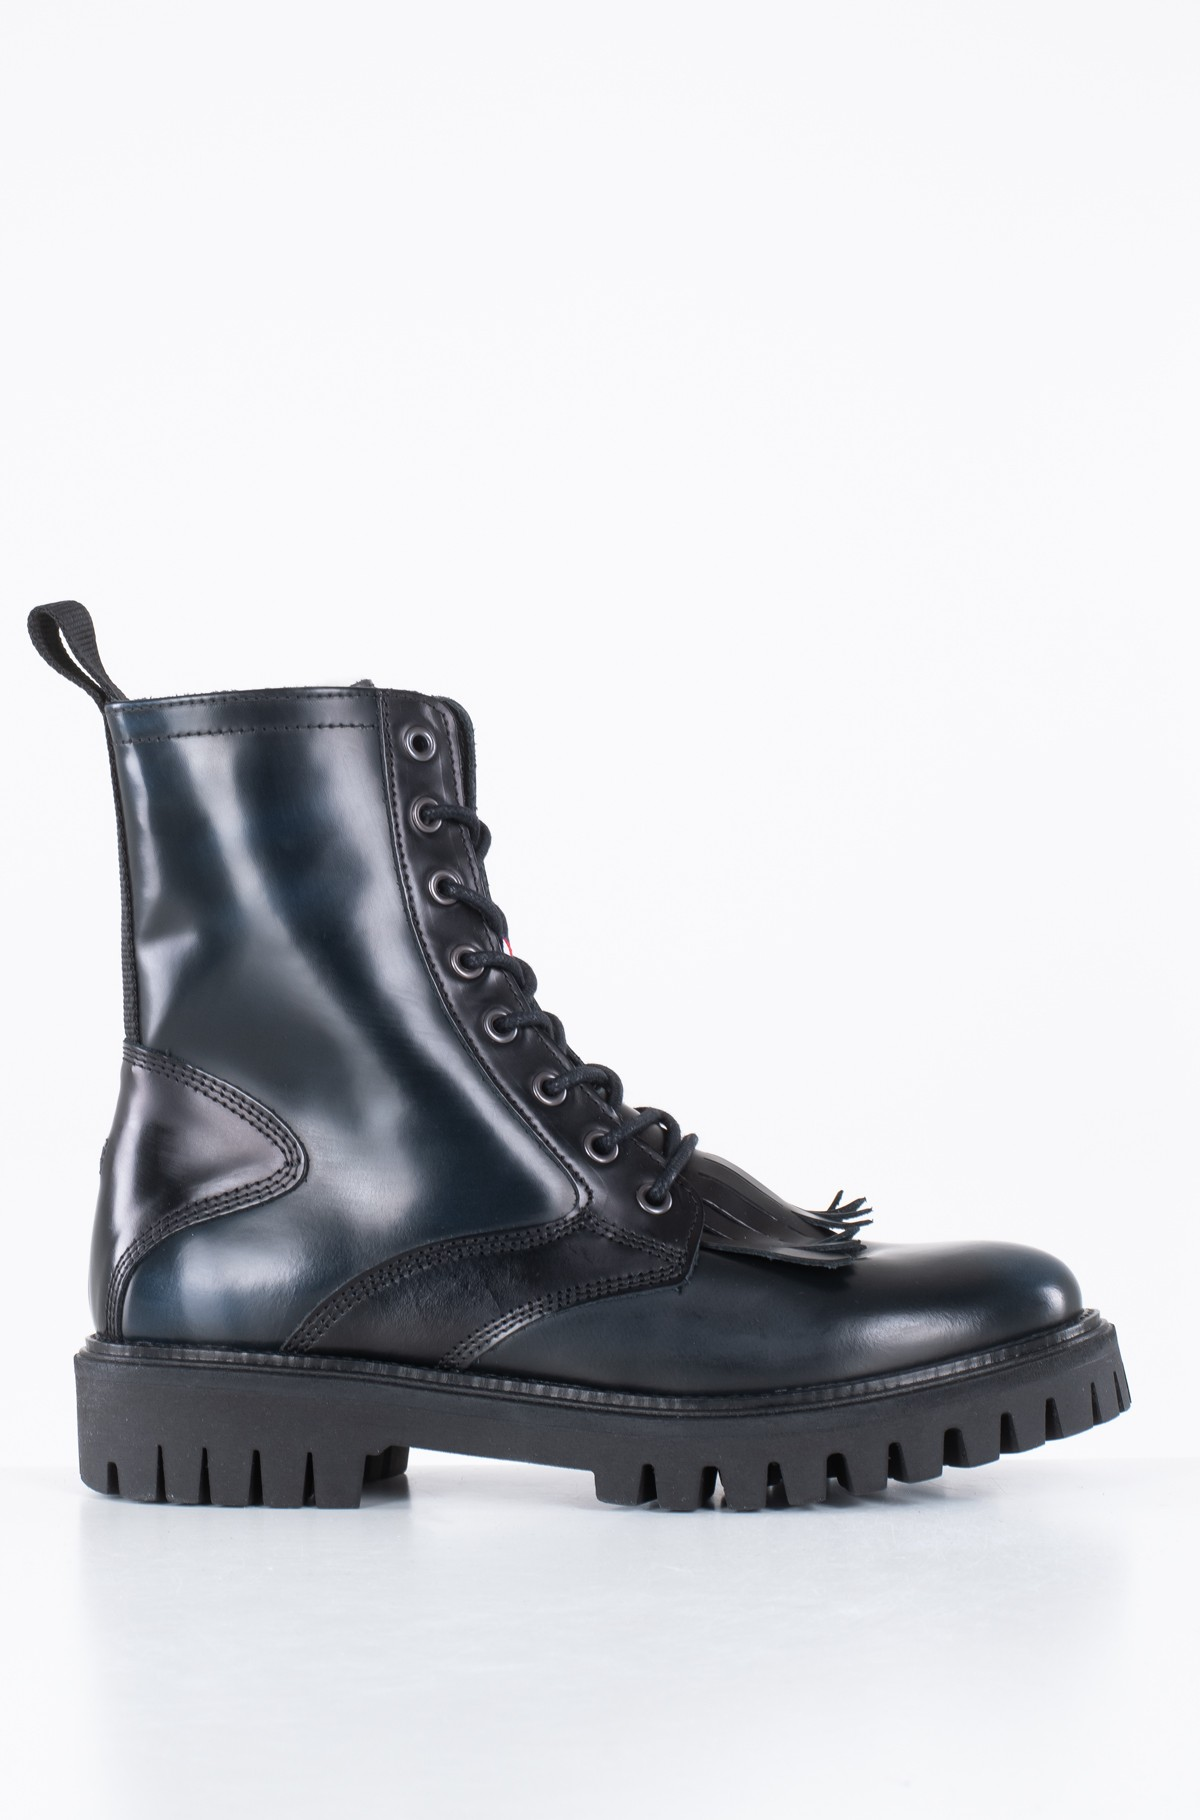 Saapad ICONIC POLISHED BOOT-full-1